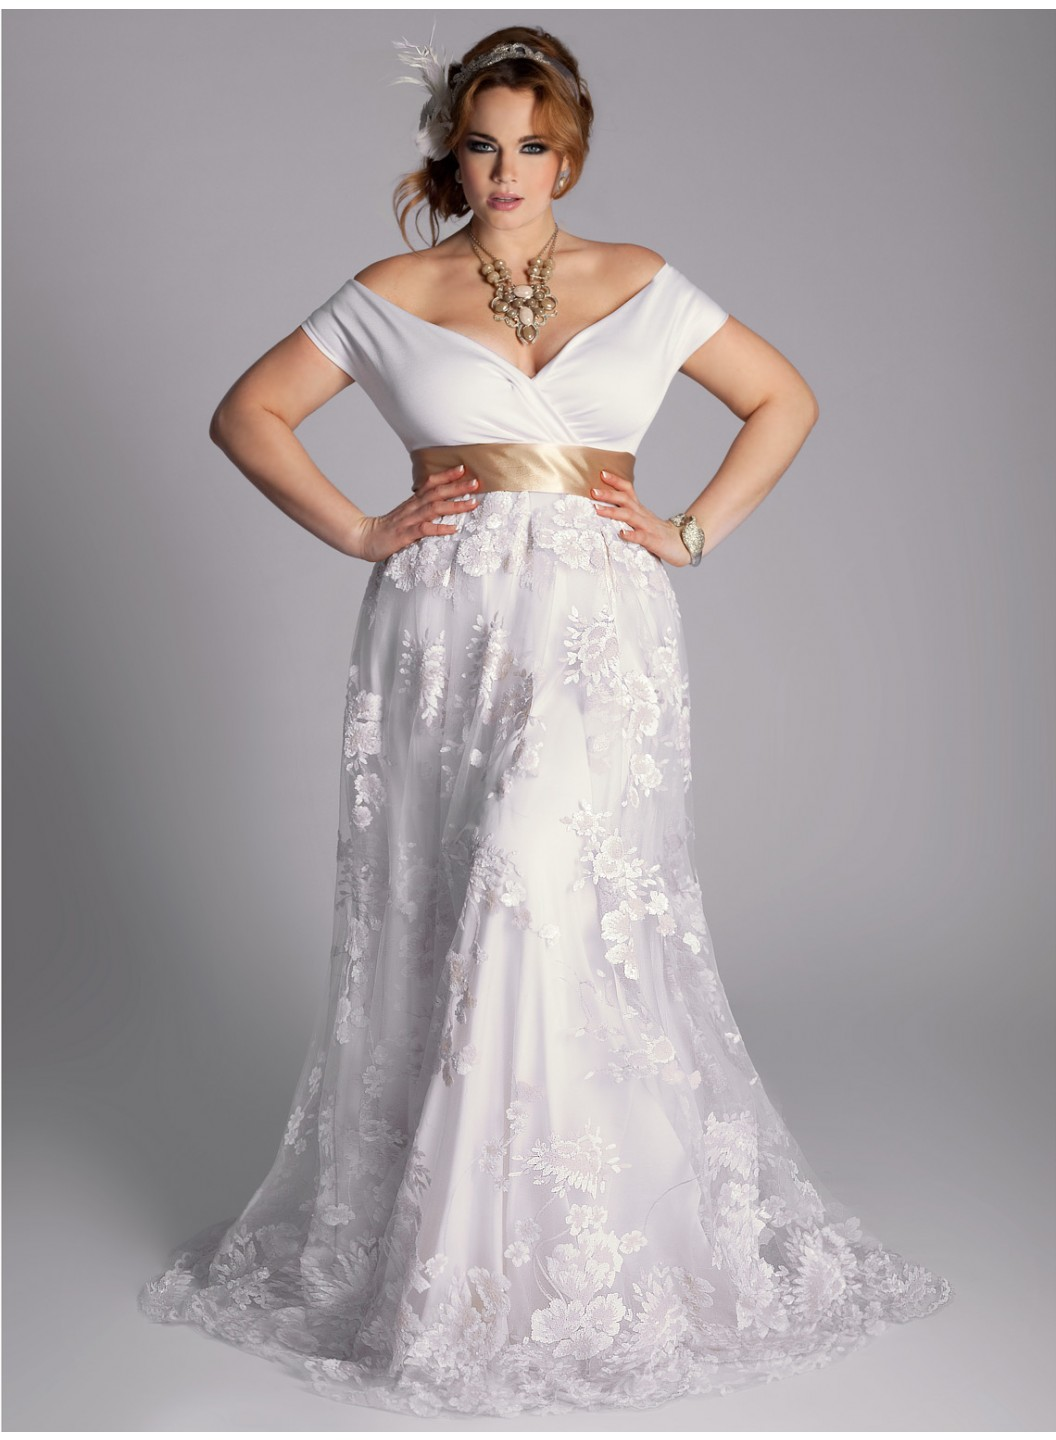 Affordable wedding dresses for plus size women 2018 plus size informal plus size wedding dresses ombrellifo Choice Image